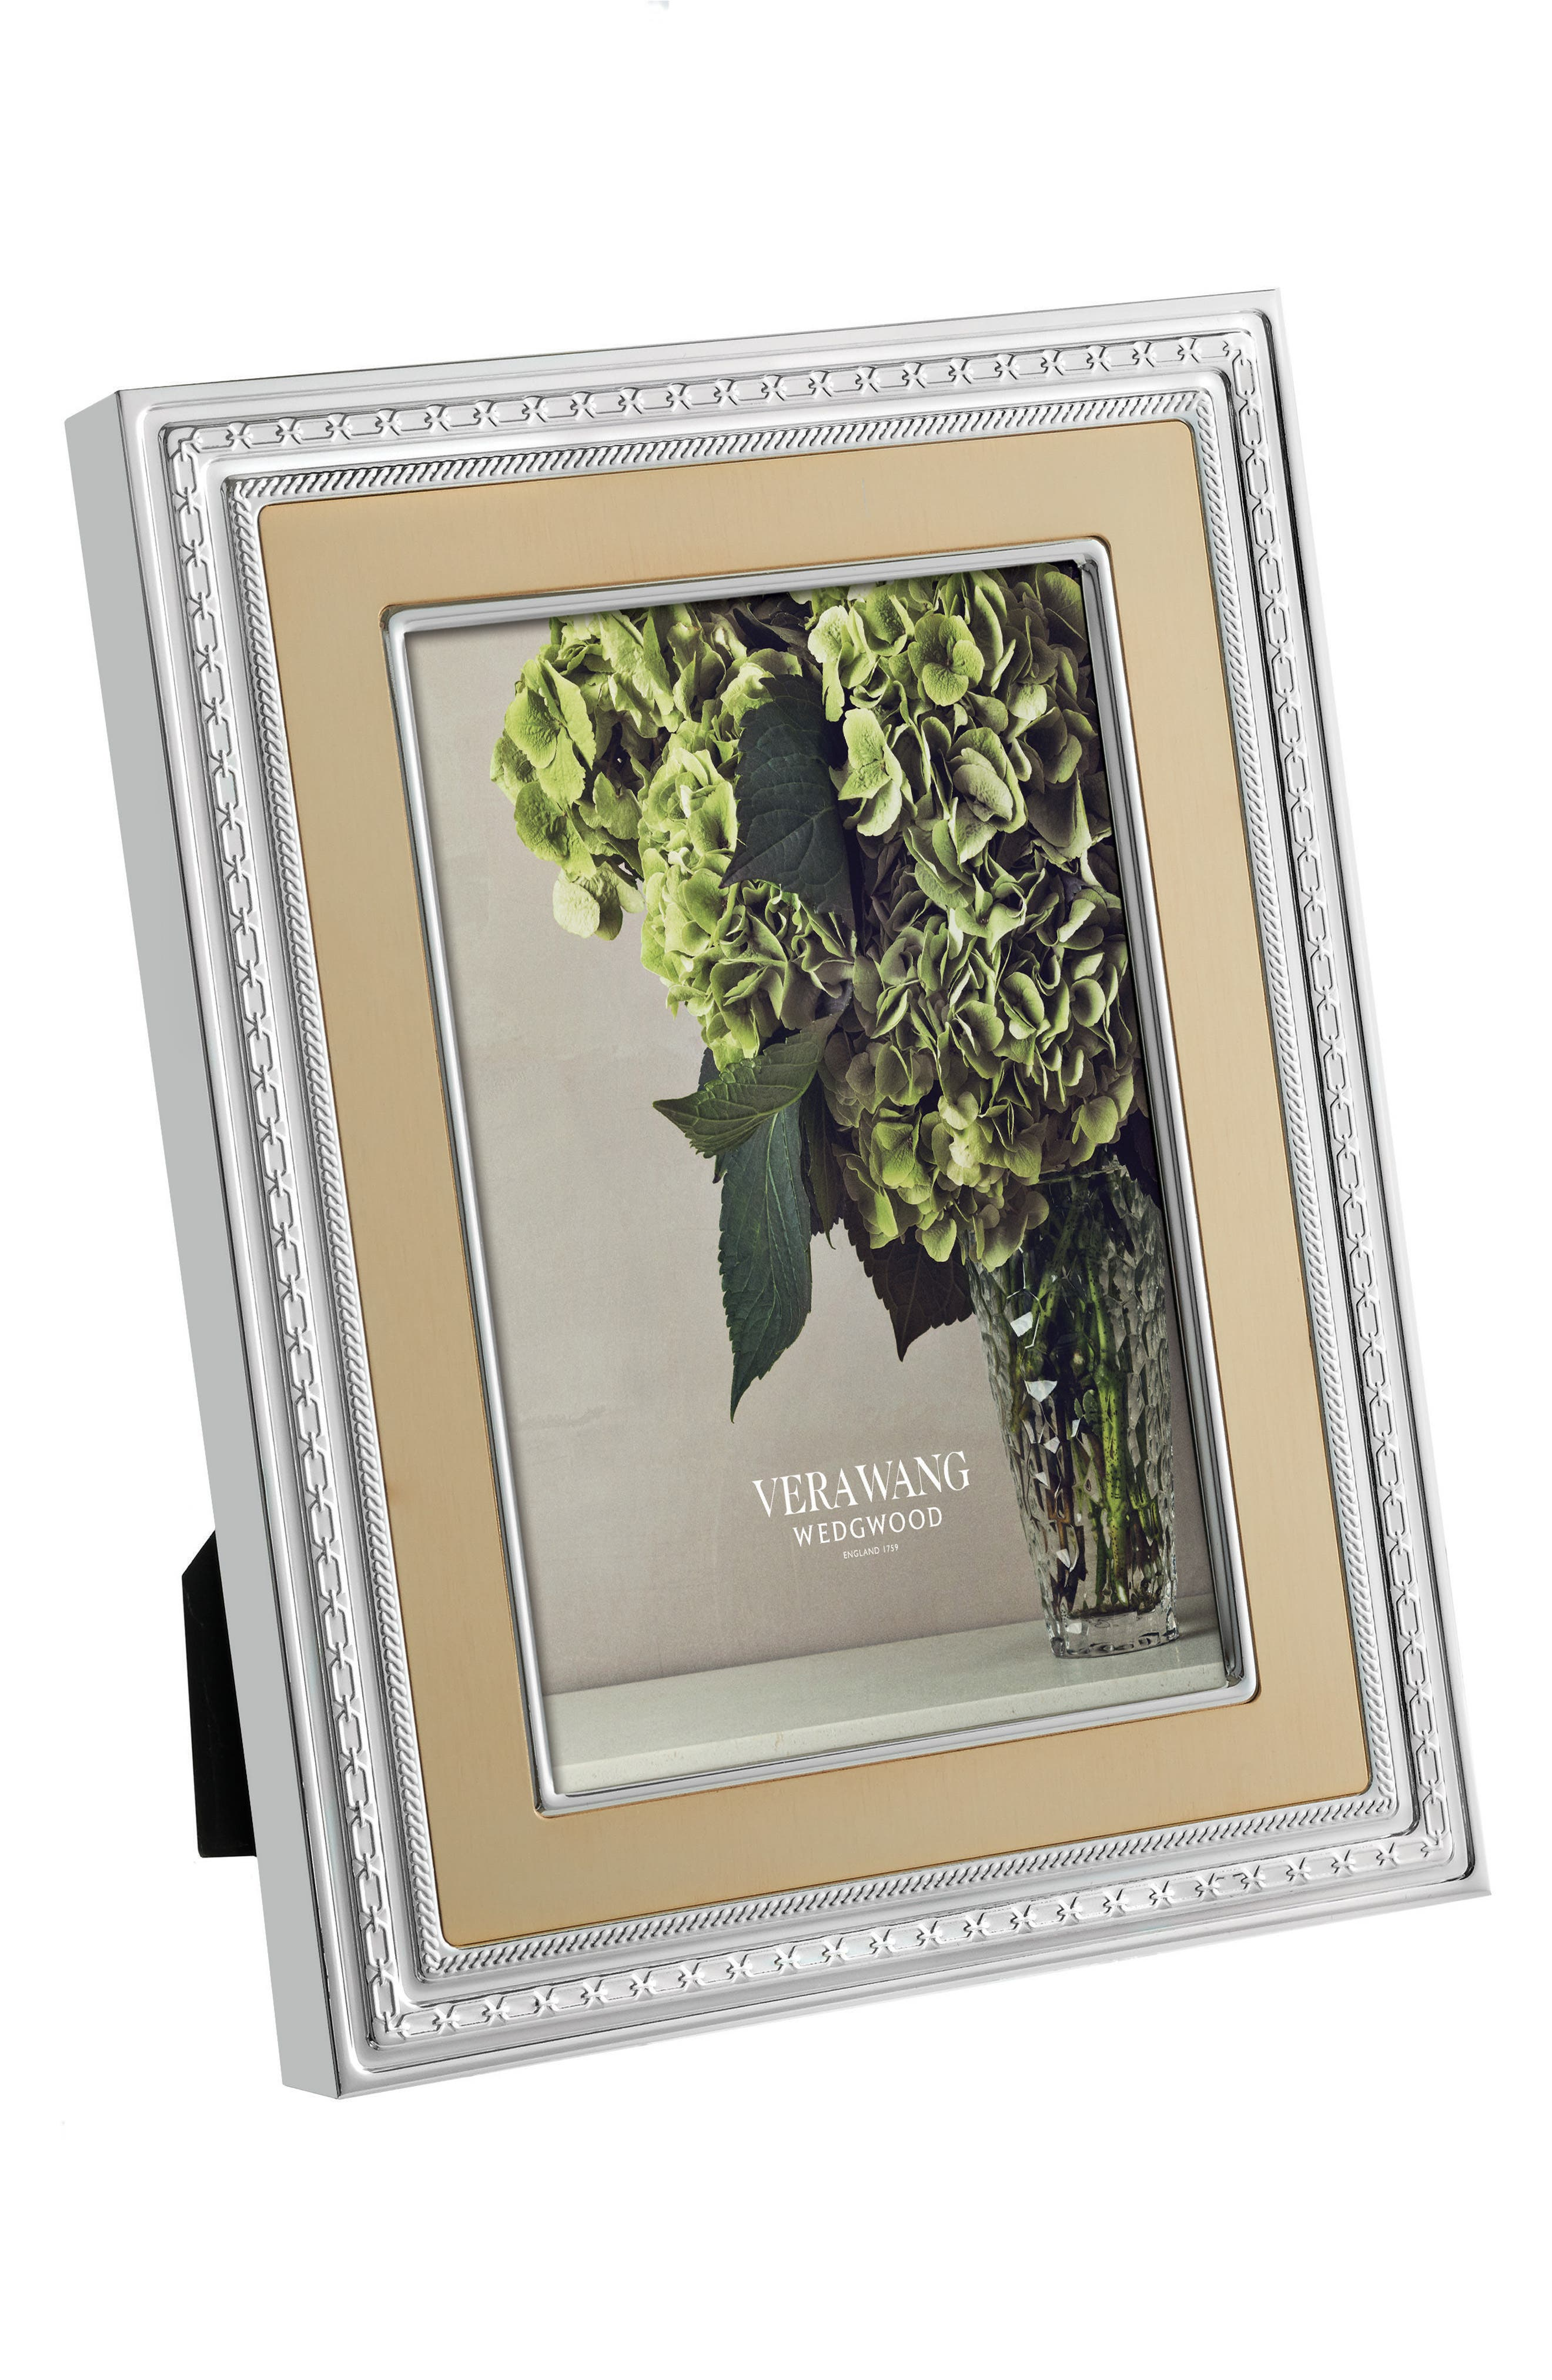 Main Image - Vera Wang x Wedgwood With Love Picture Frame